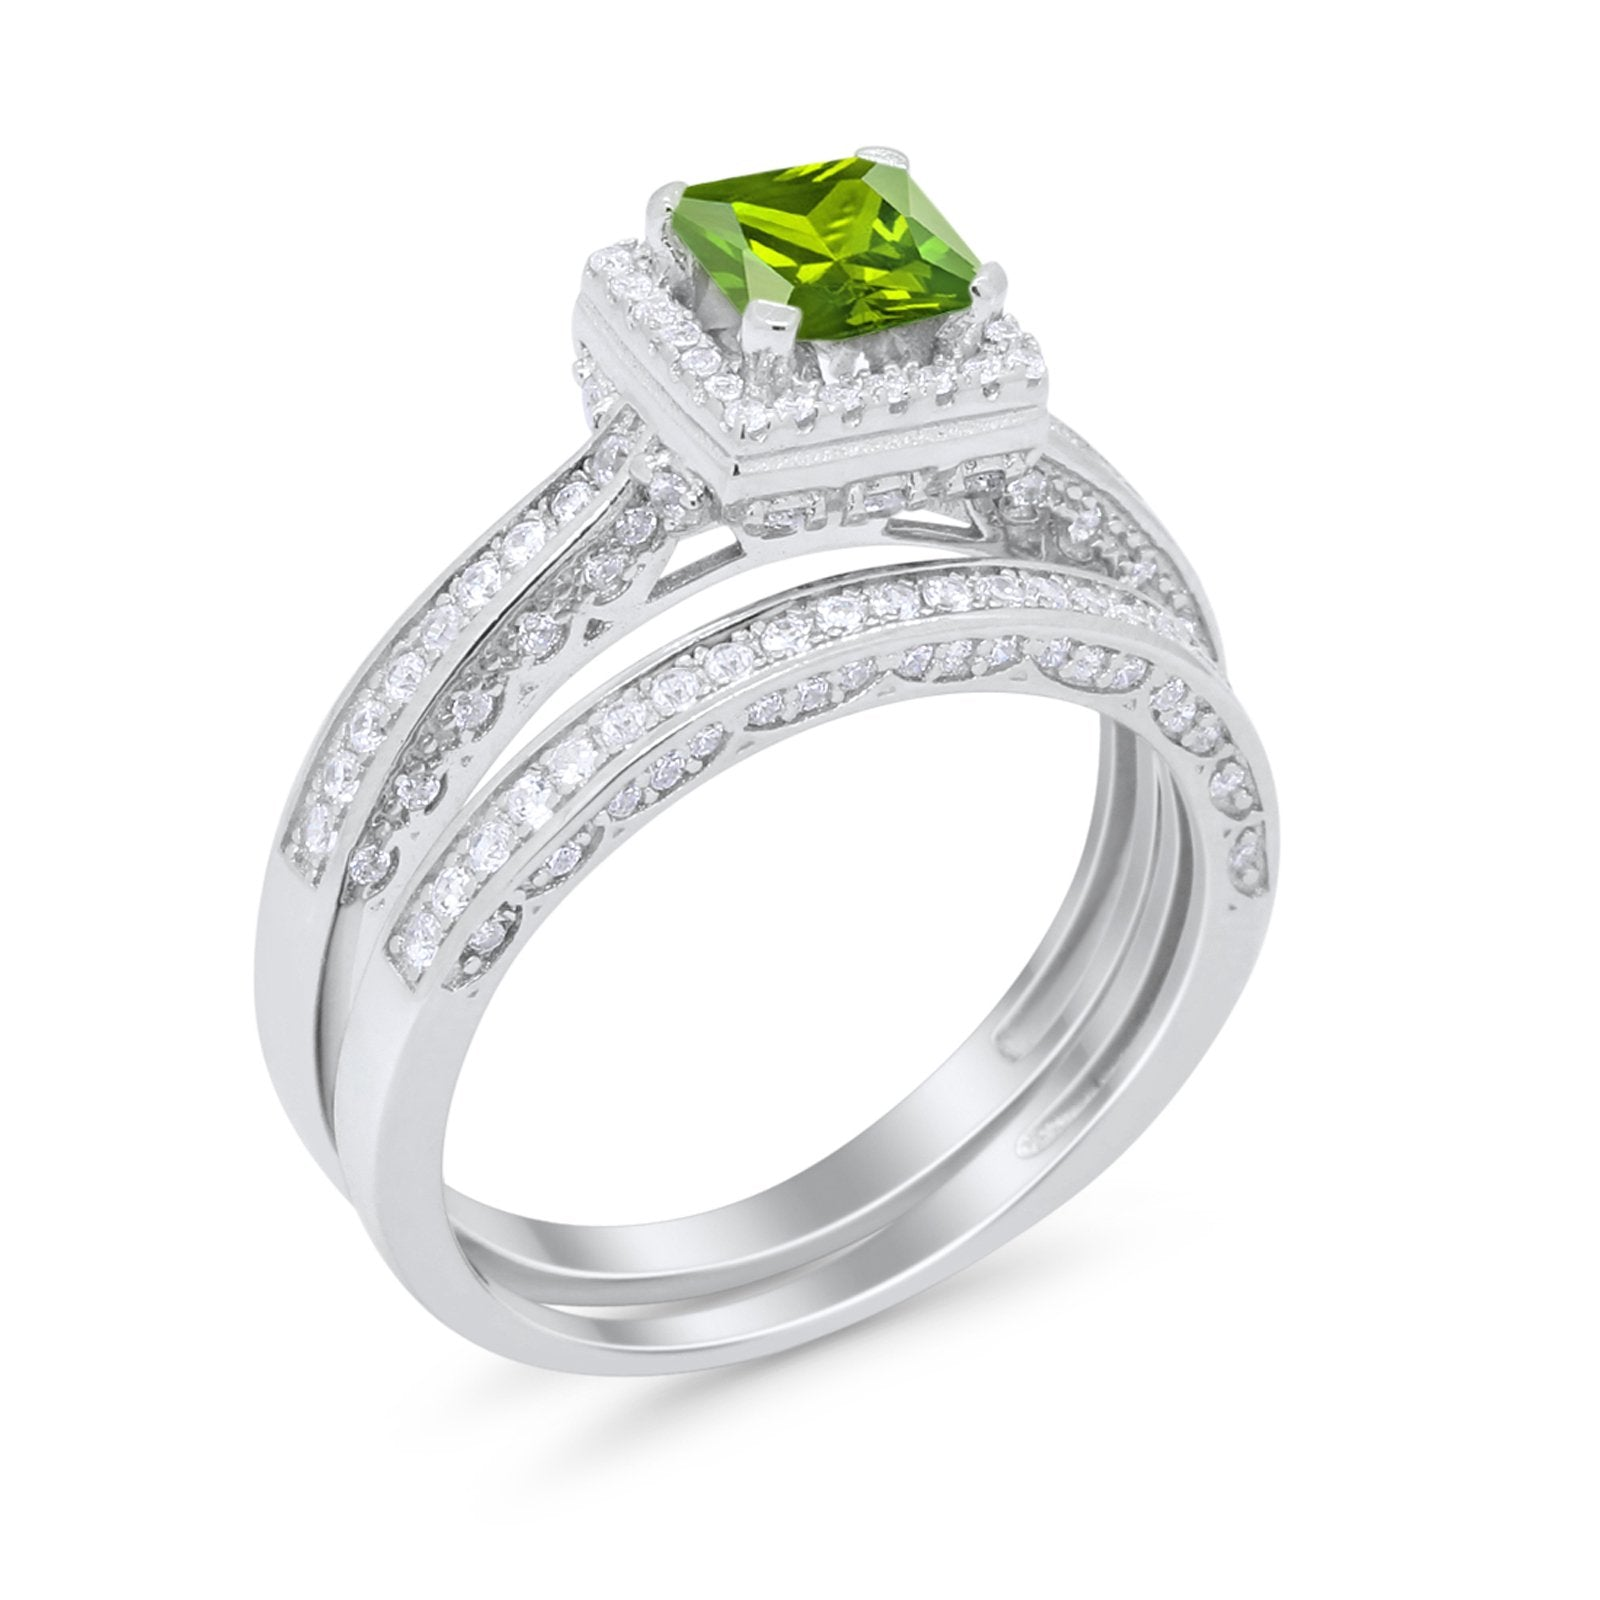 Halo Princess Cut Art Deco Wedding Bridal Set Ring Round Cubic Zirconia 925 Sterling Silver